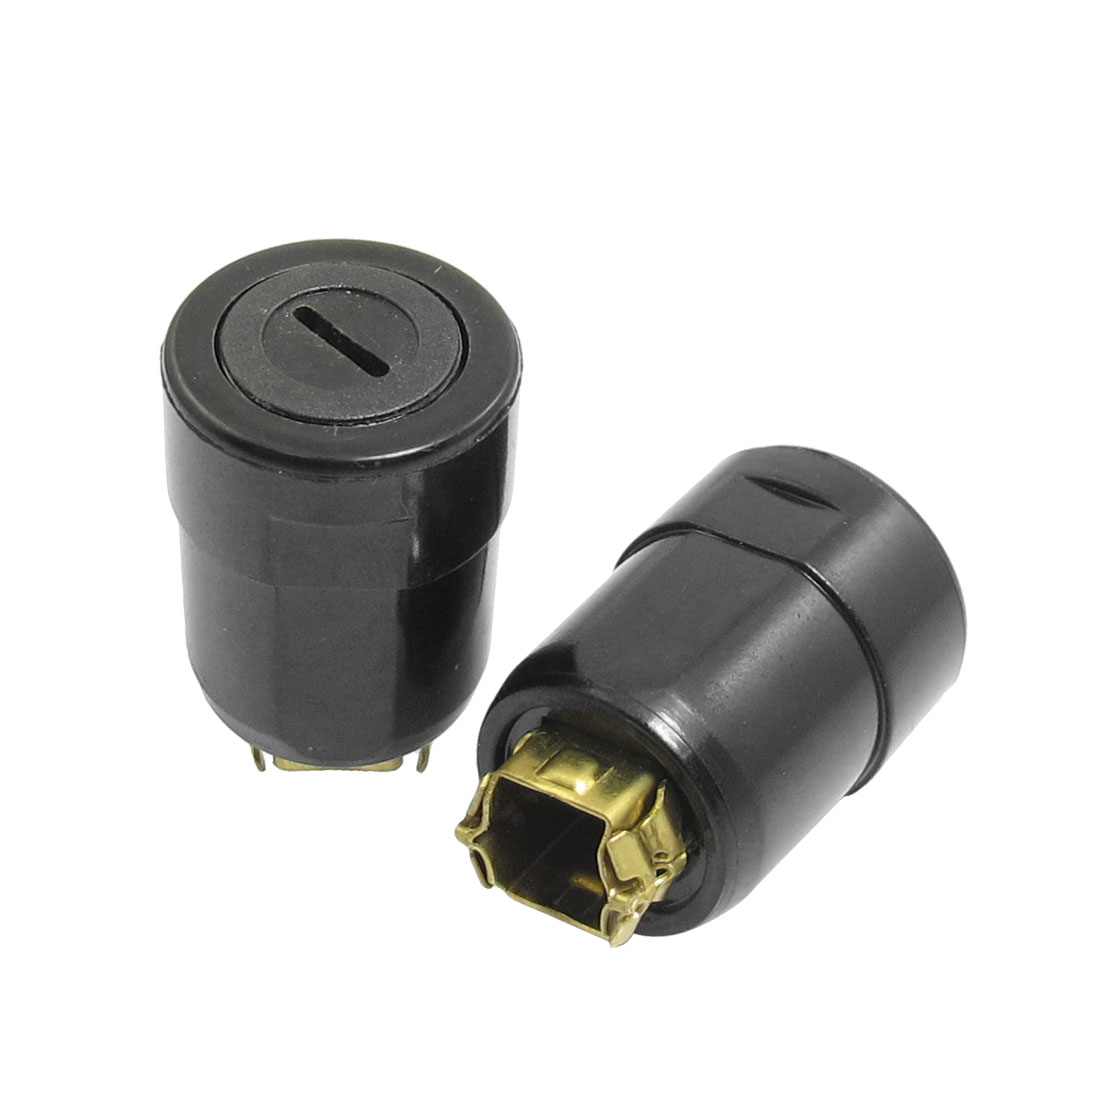 2 x Replacing 892A1 Carbon Brush Holder 8mm x 6.5mm for Dragon Electric Hammer